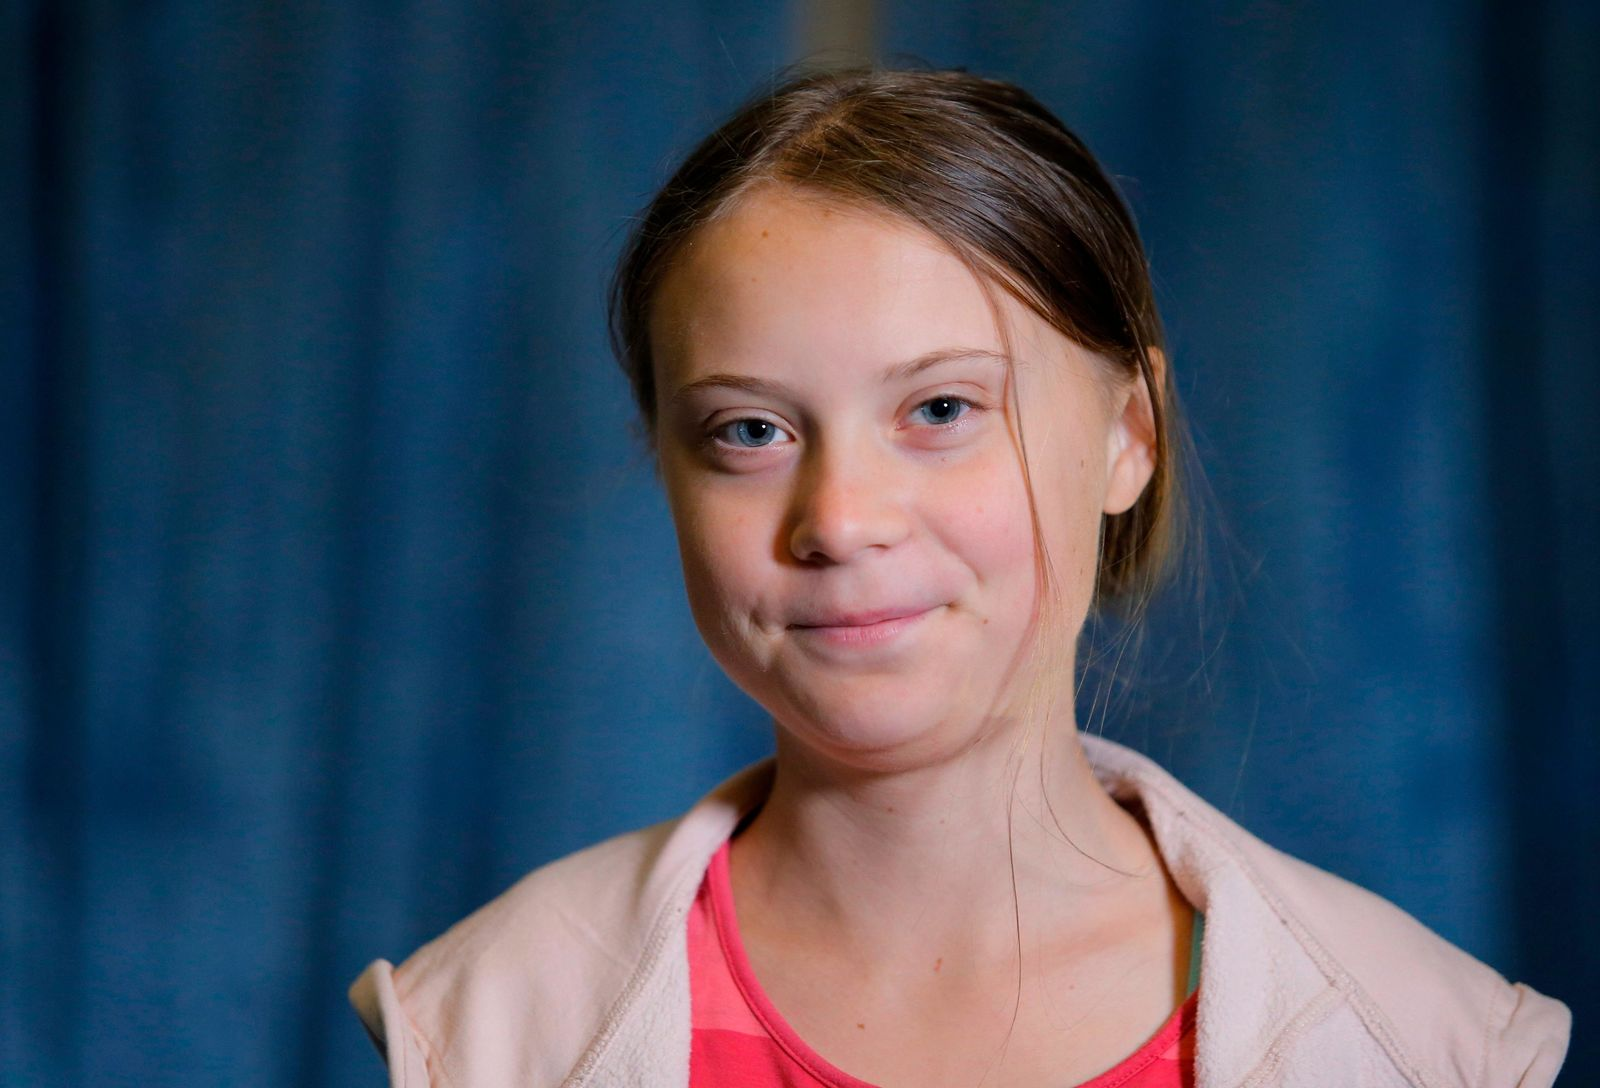 FILE - In this Friday, Sept. 20, 2019 file photo, Swedish environmental activist Greta Thunberg attends an interview with the Associated Press before the Climate Strike, at City Hall, in New York. . (AP Photo/Eduardo Munoz Alvarez, File)